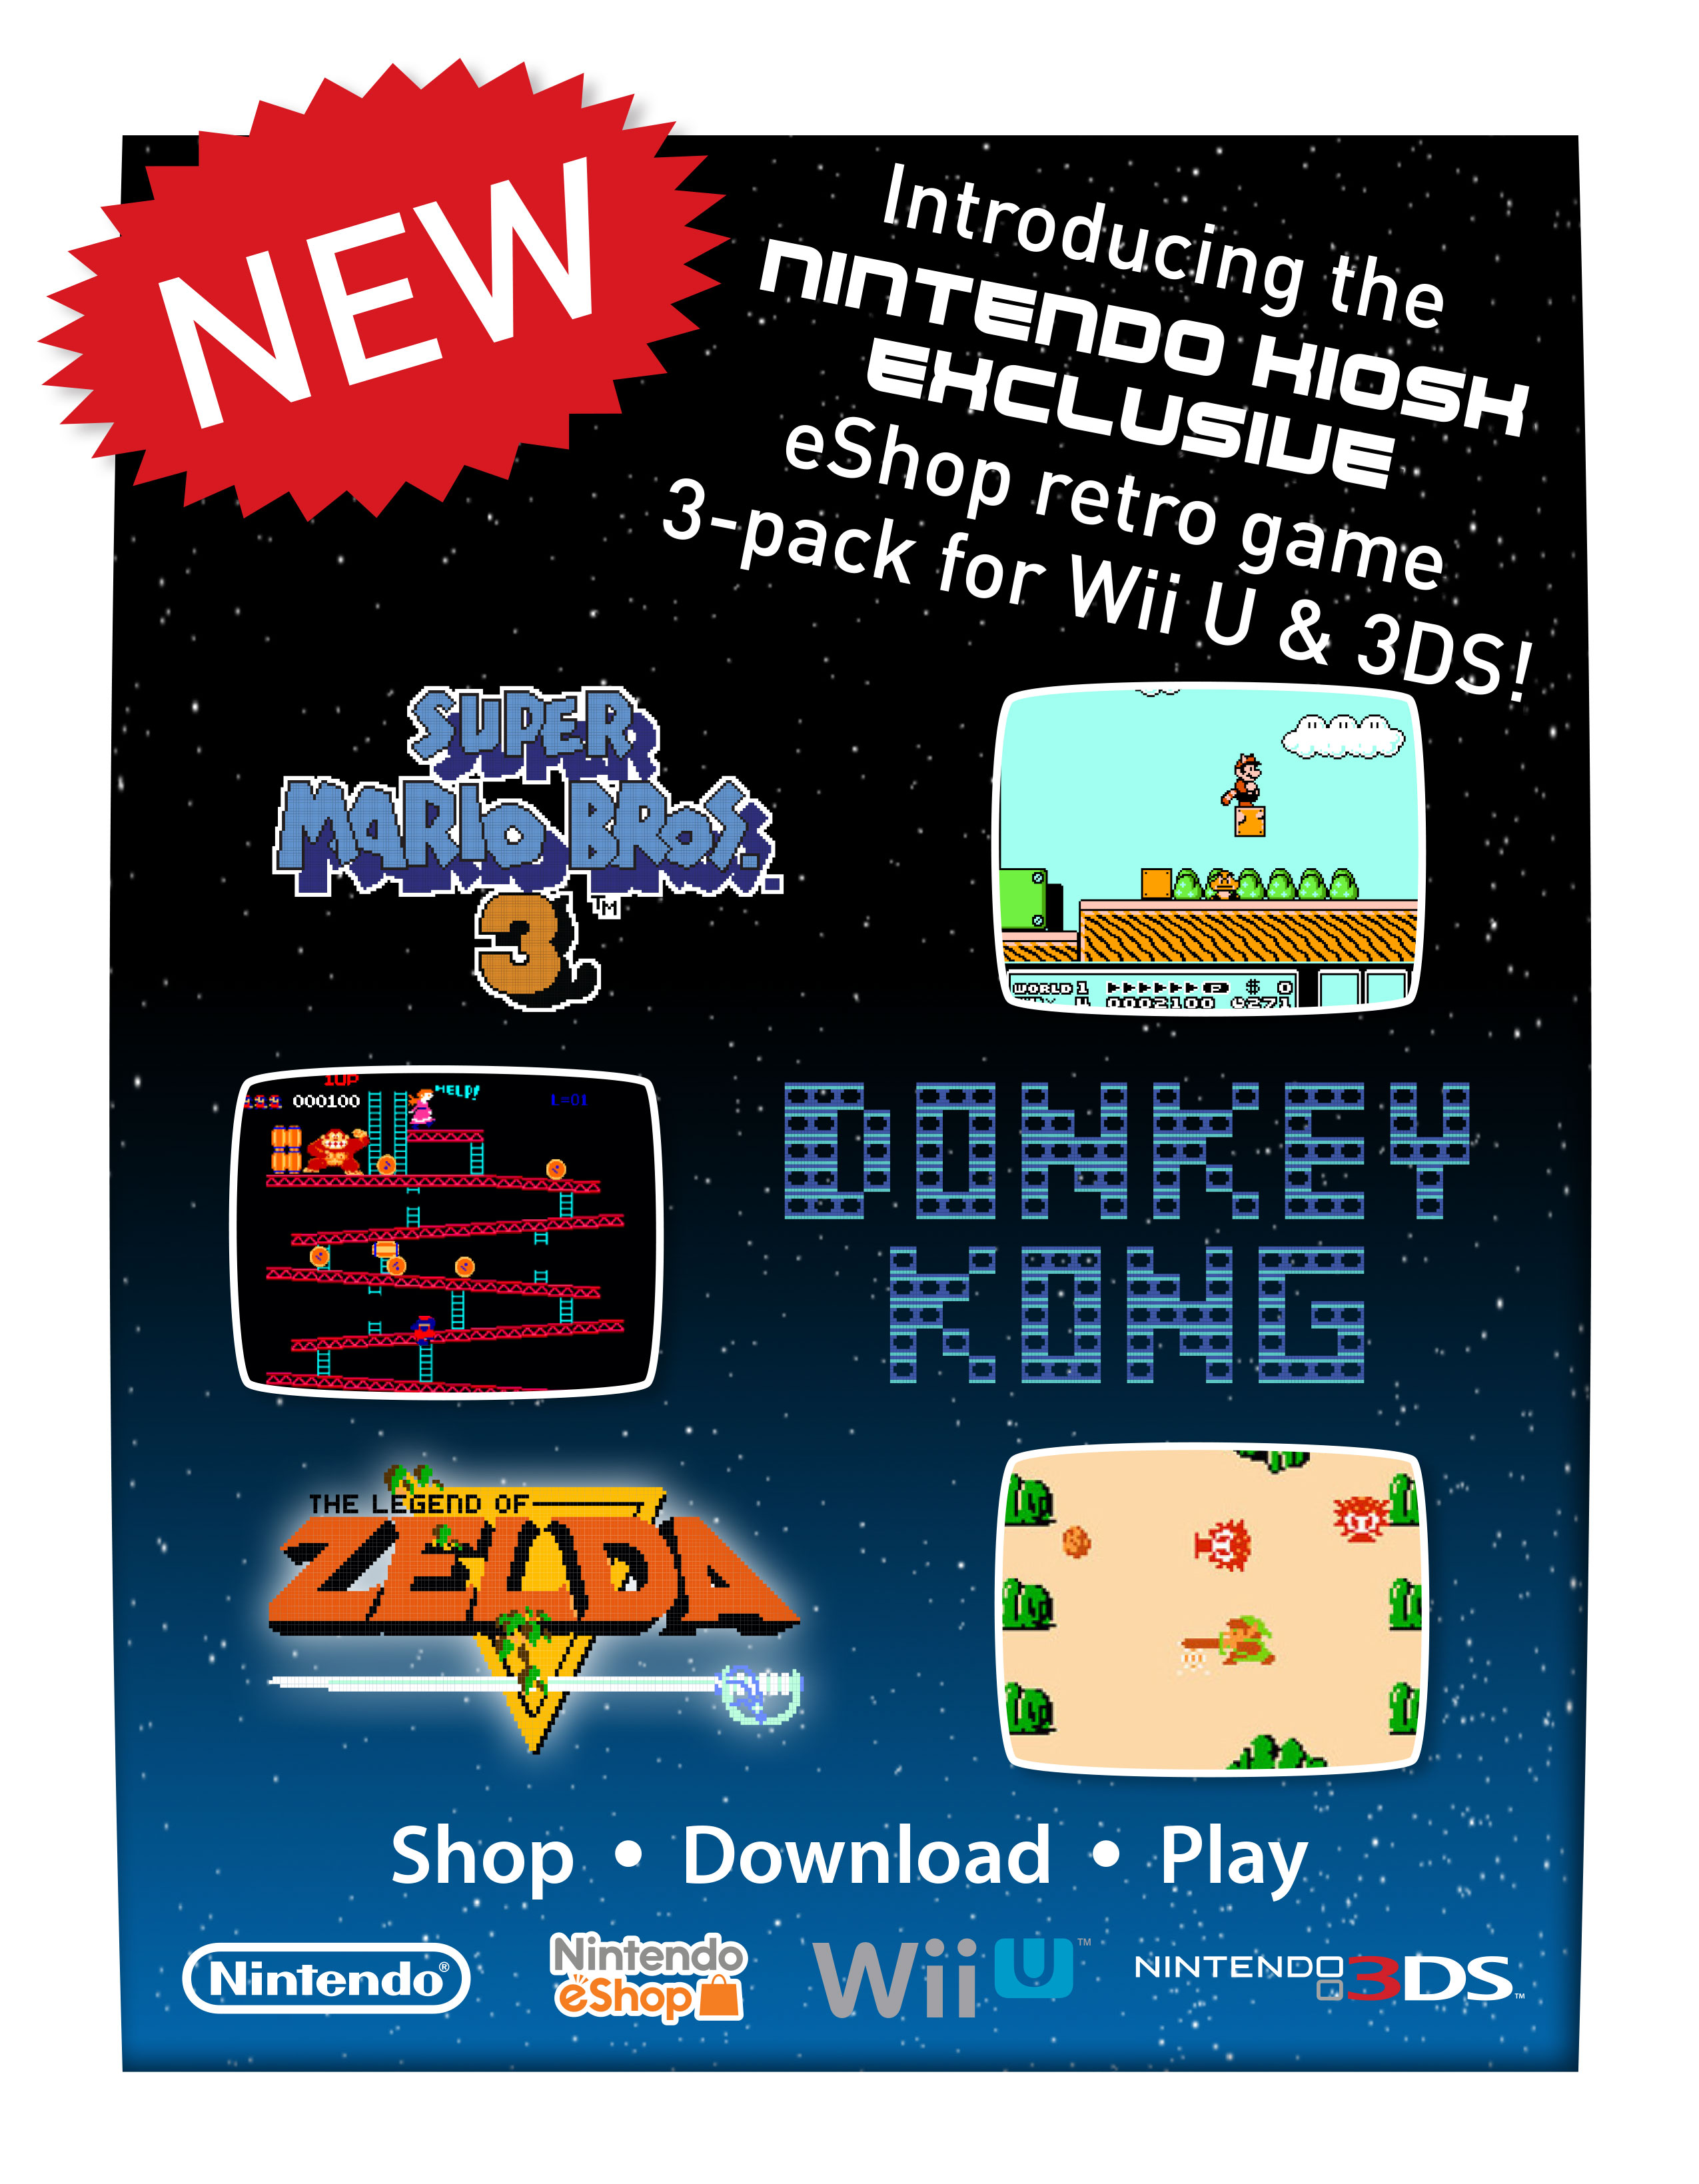 Special Virtual Console 3-Pack